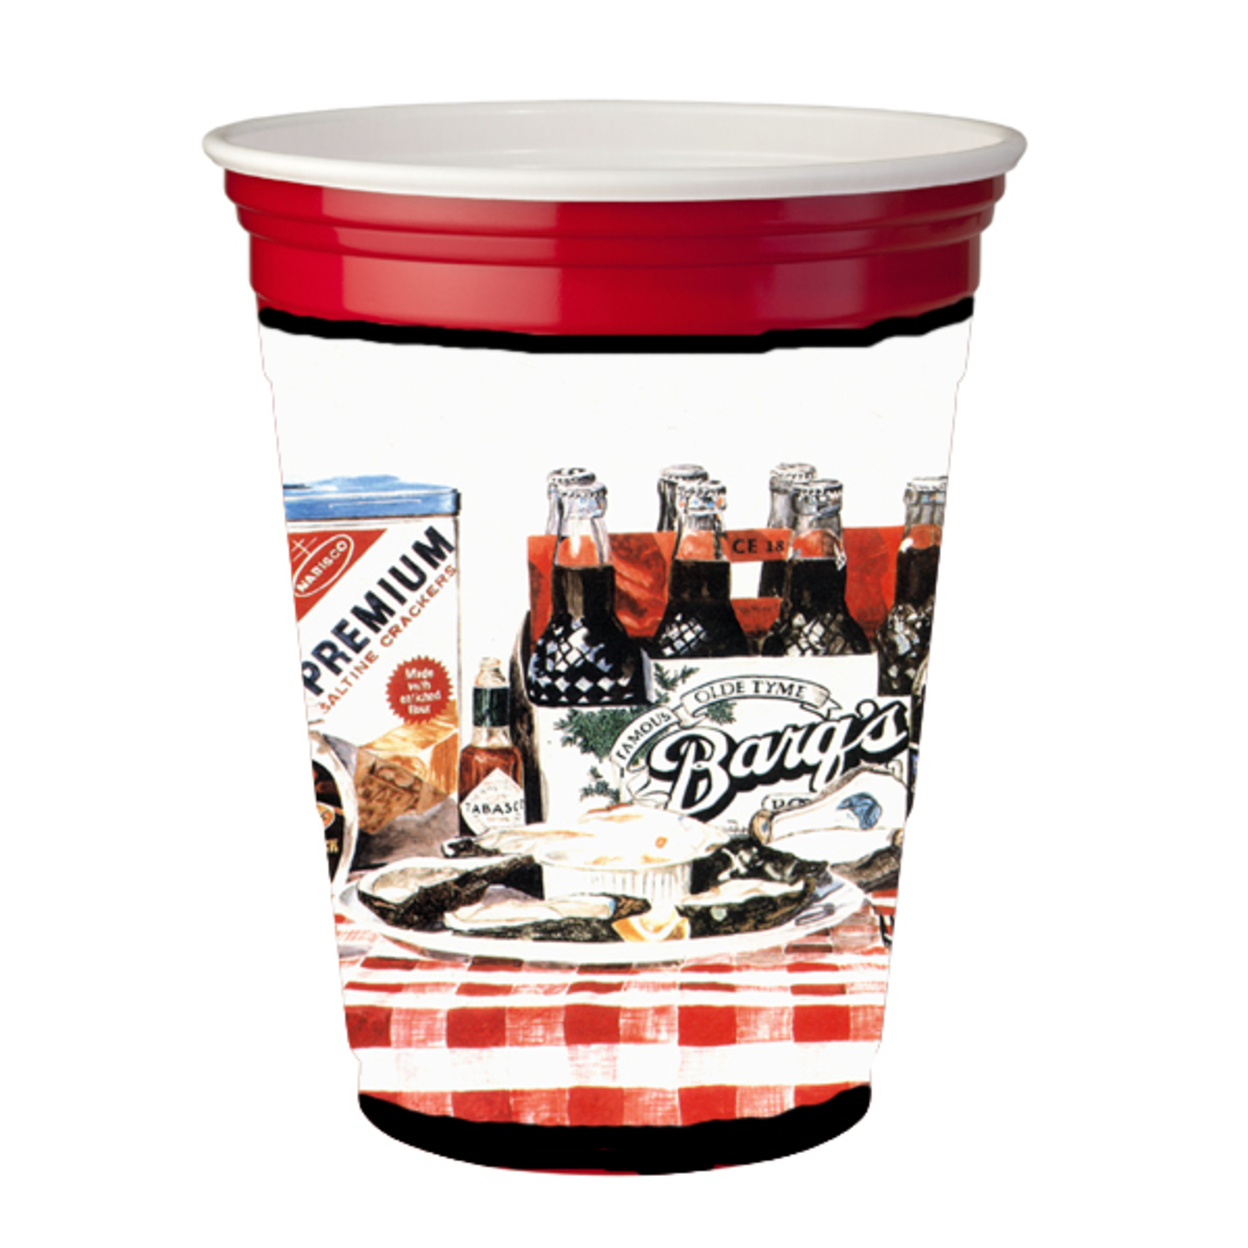 Carolines Treasures 1004Rsc Barqs oysters Red Solo Cup Hugger 5a3c77ebe224611f232cf146